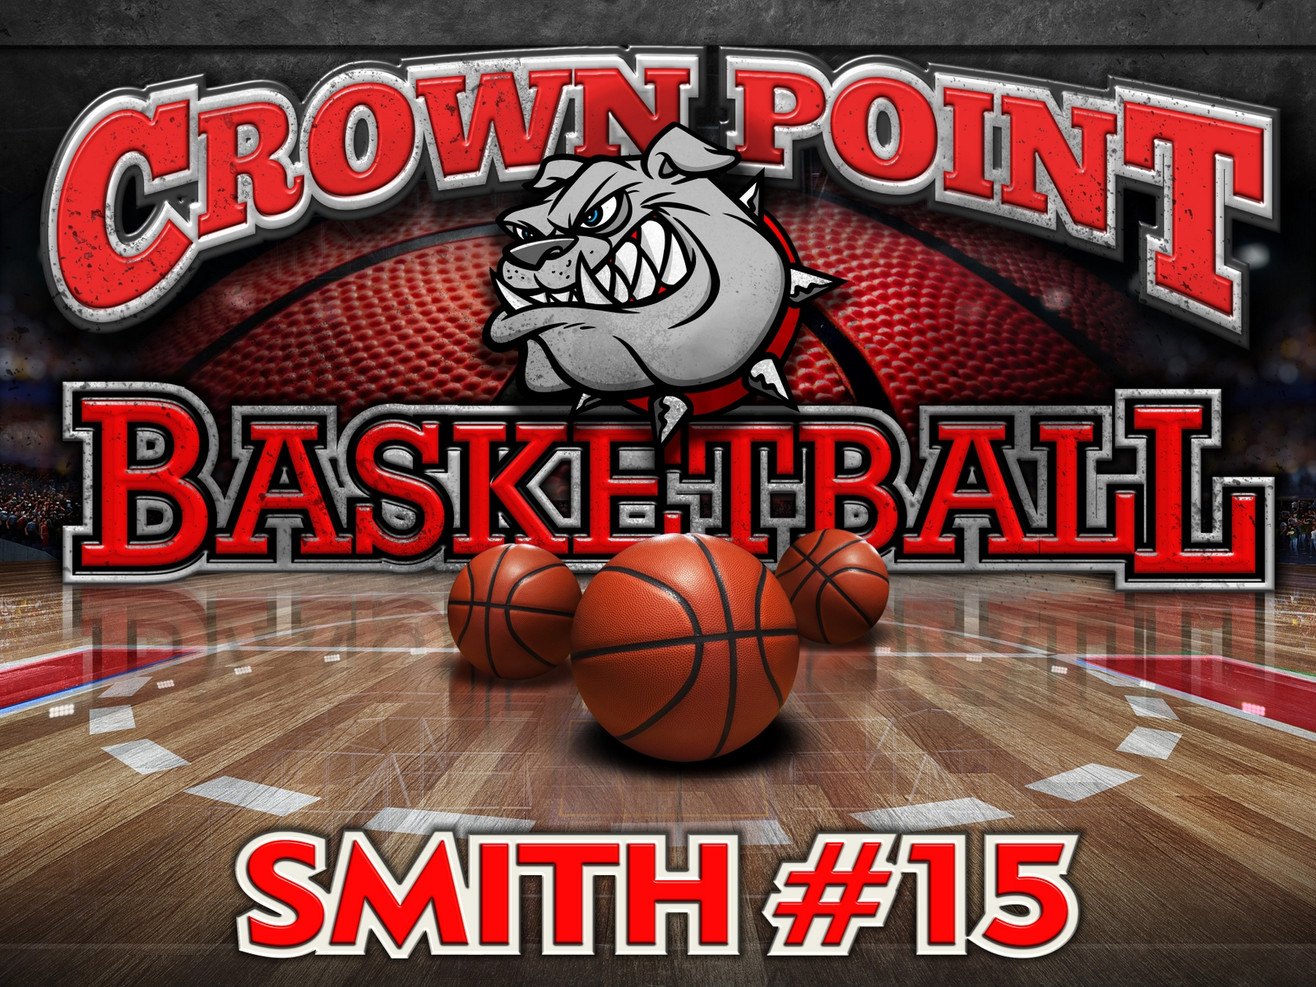 10-CROWN POINT BASKETBALL YS 2018.jpg